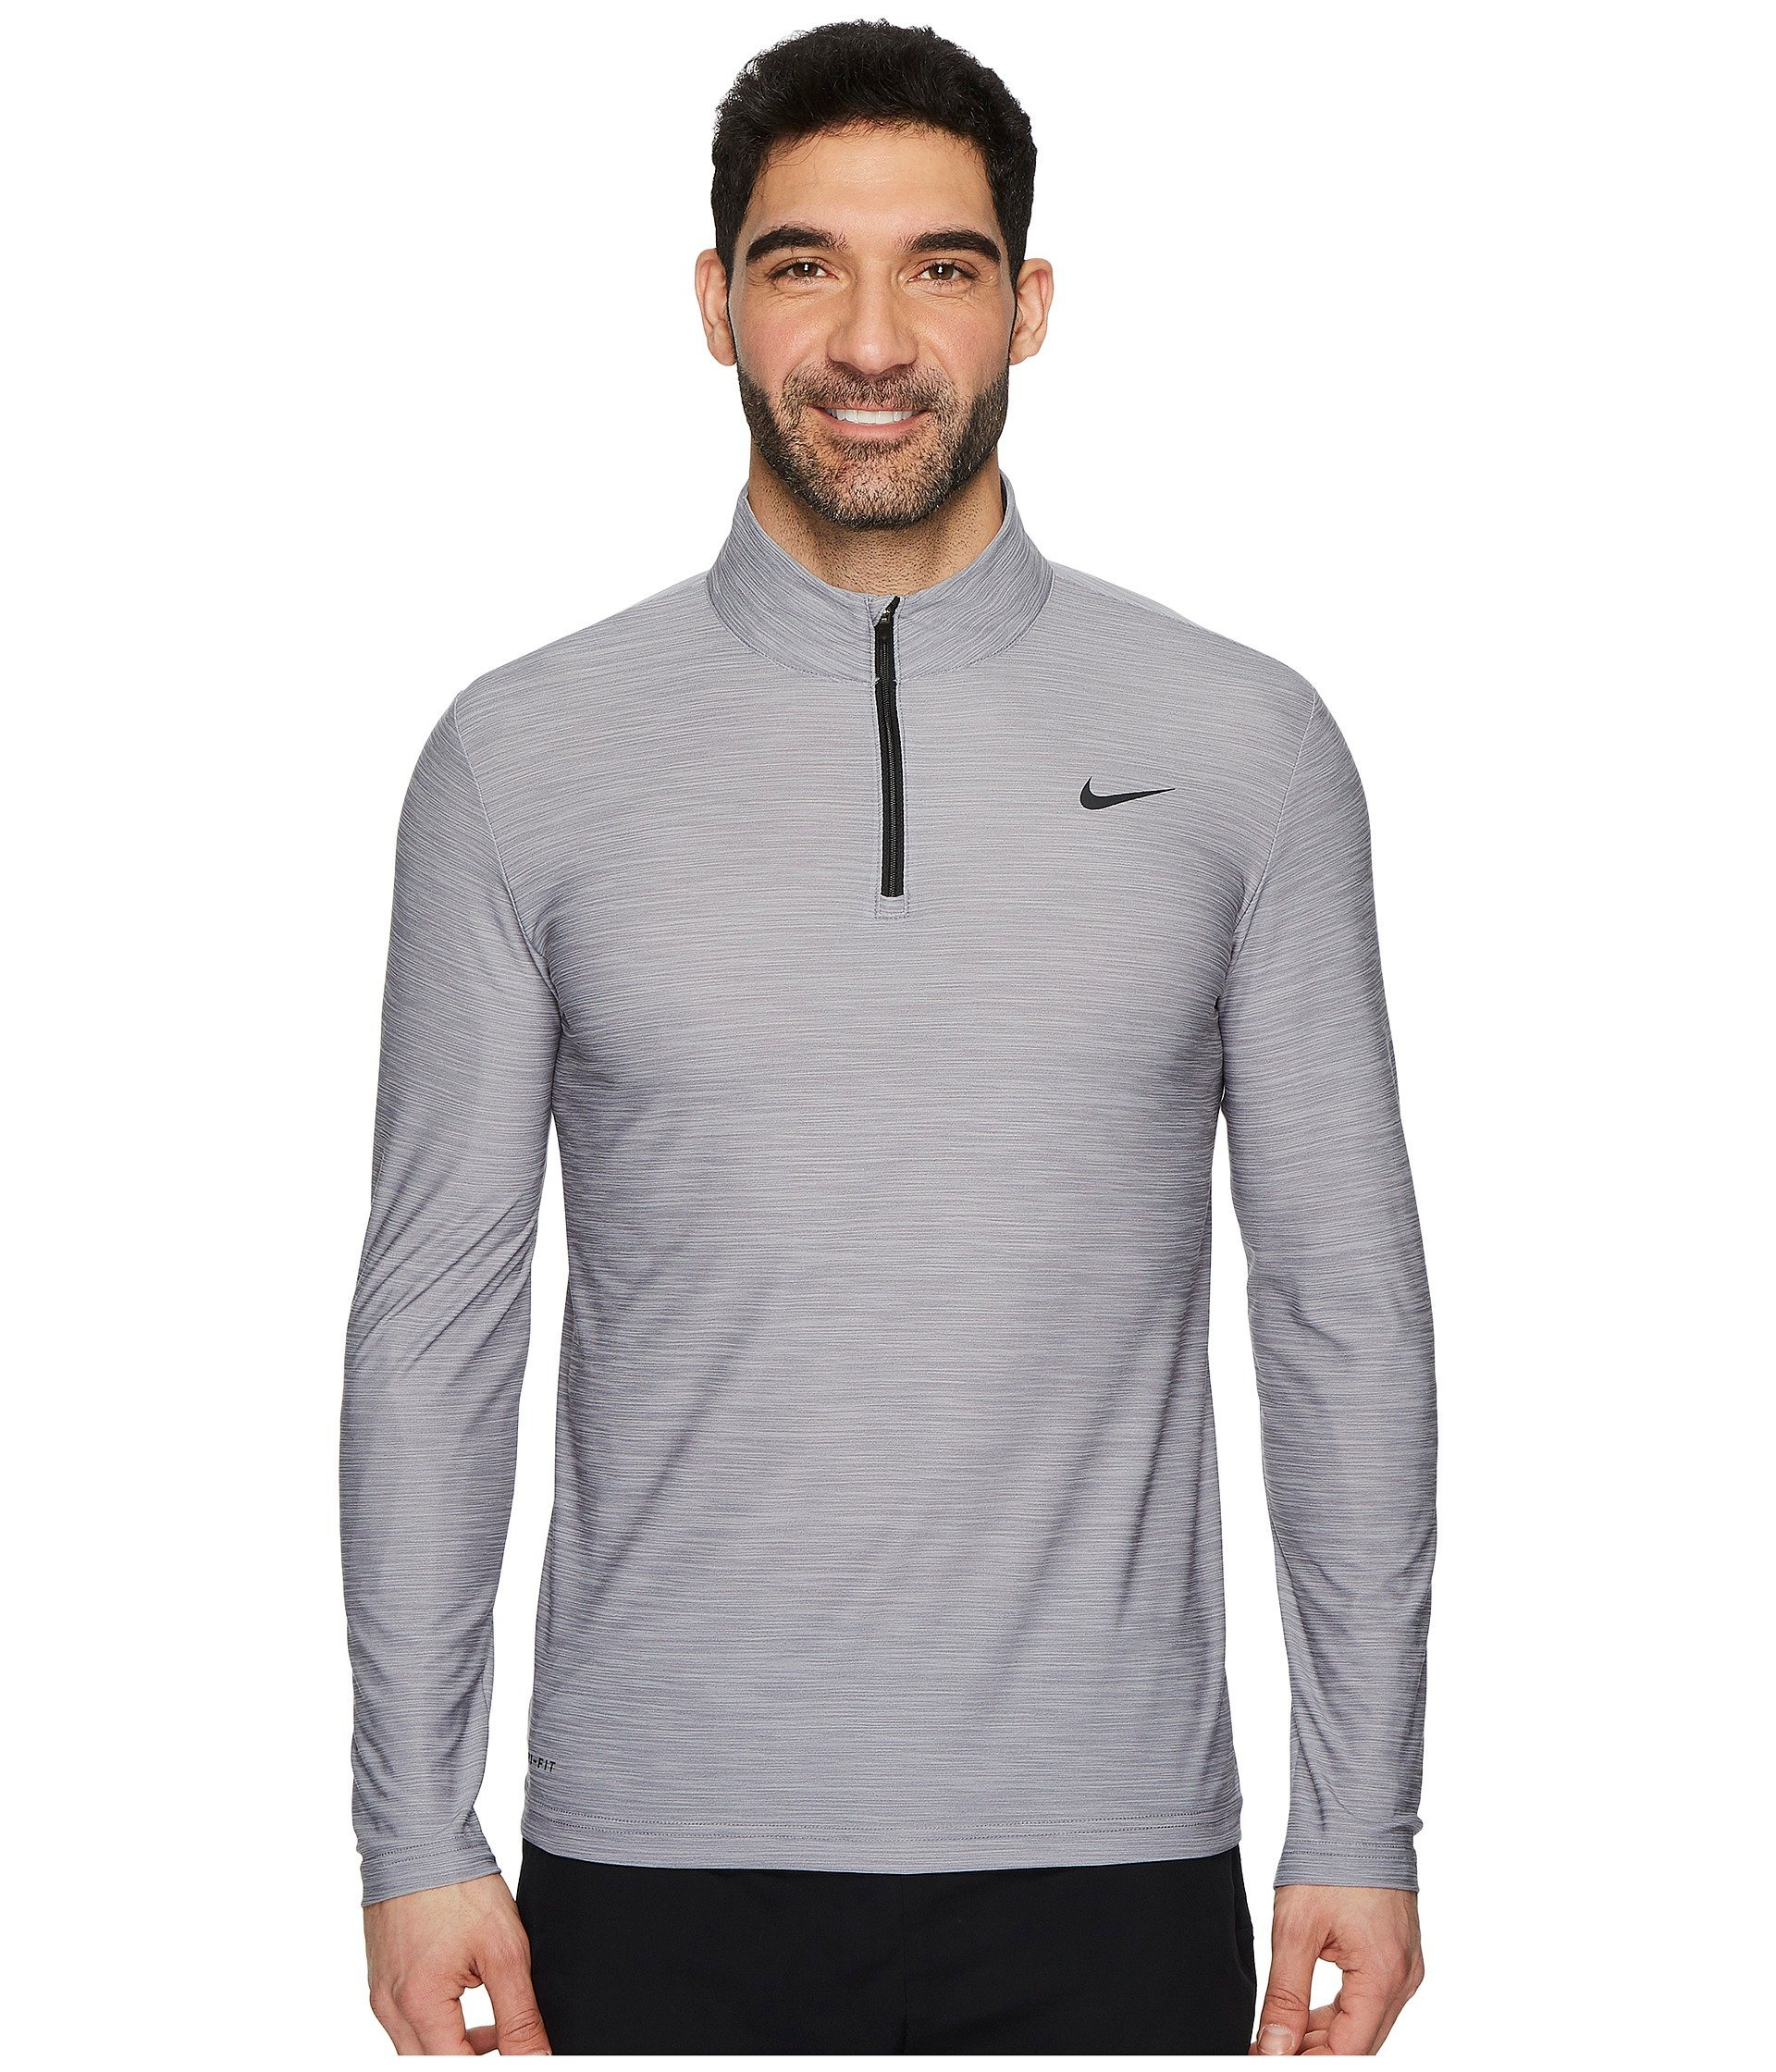 NIKE Mens Breathe Dri-Fit 1/4 Zip Long Sleeve Training Shirt 940177 (Medium, Atmosphere Grey/Gunsmoke-Black) by Nike